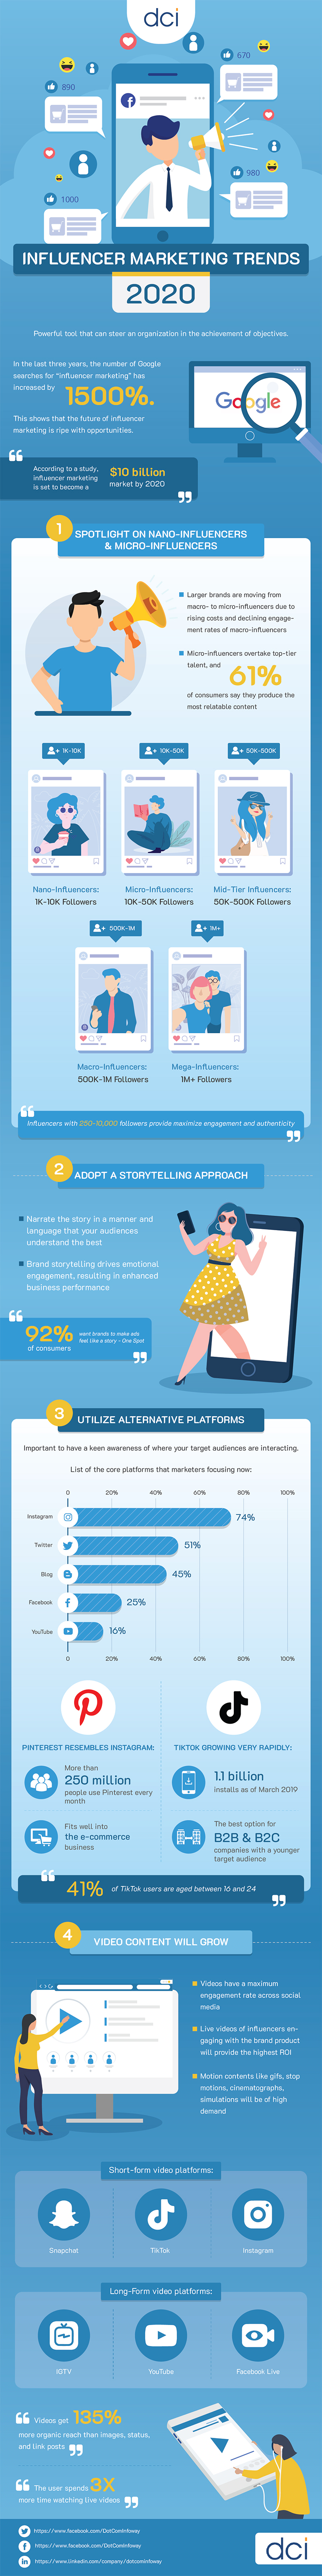 Infographic lists influencer marketing trend tips